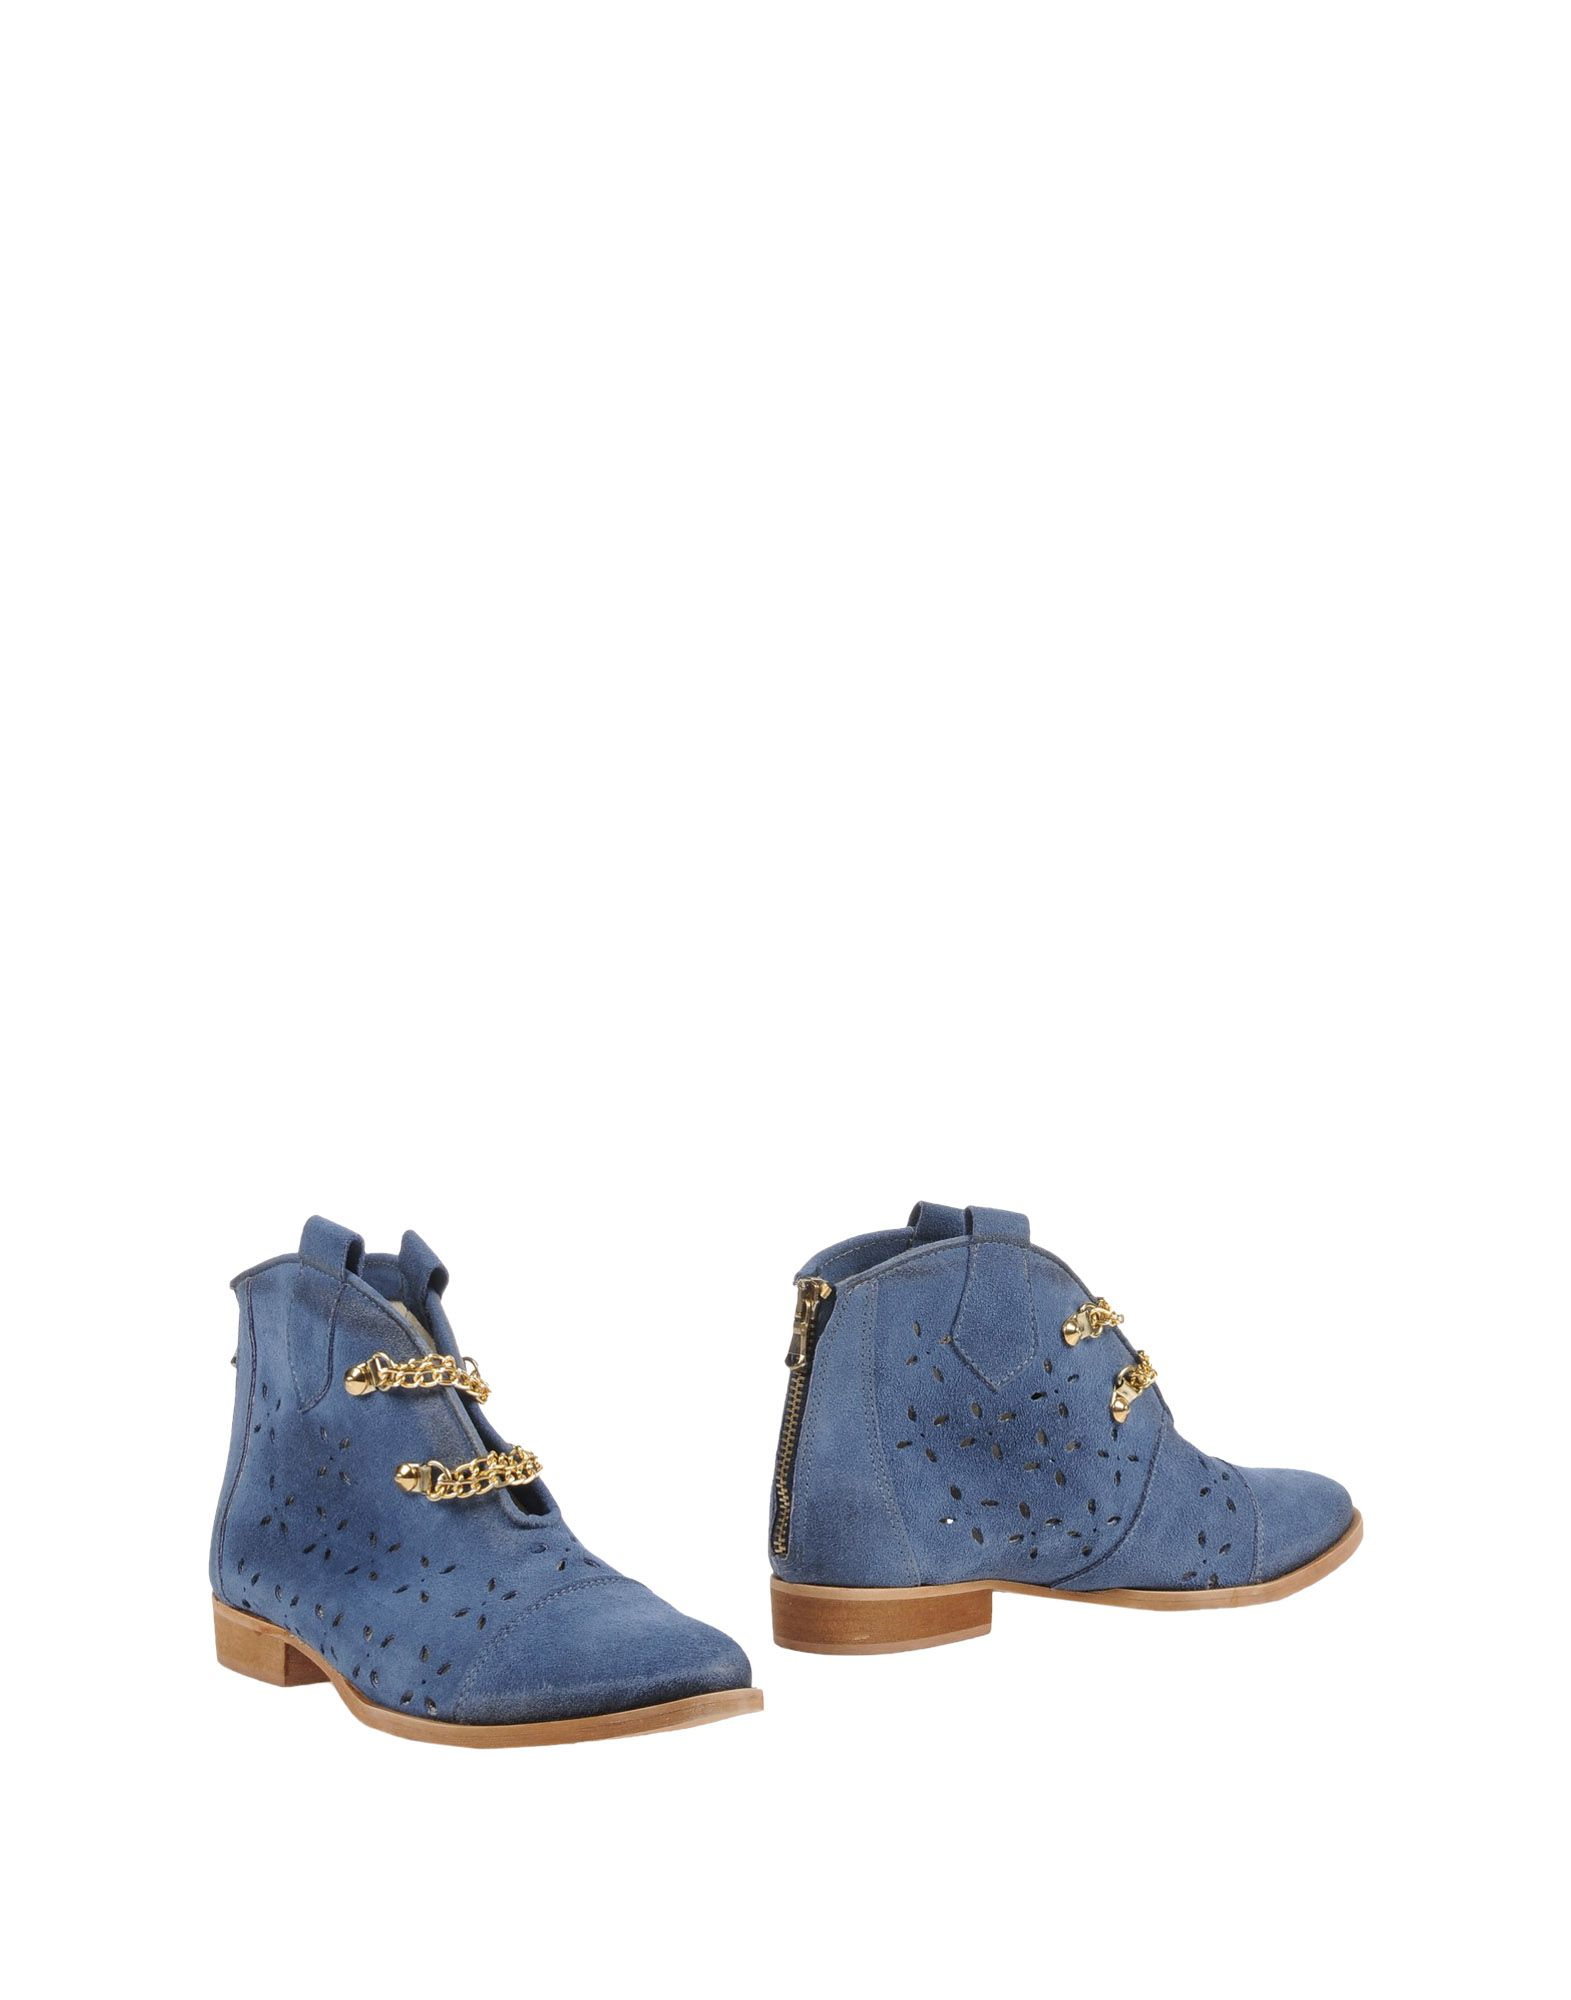 Onako' Ankle Ankle Boot - Women Onako' Ankle Ankle Boots online on  Australia - 11443694US 7f5754